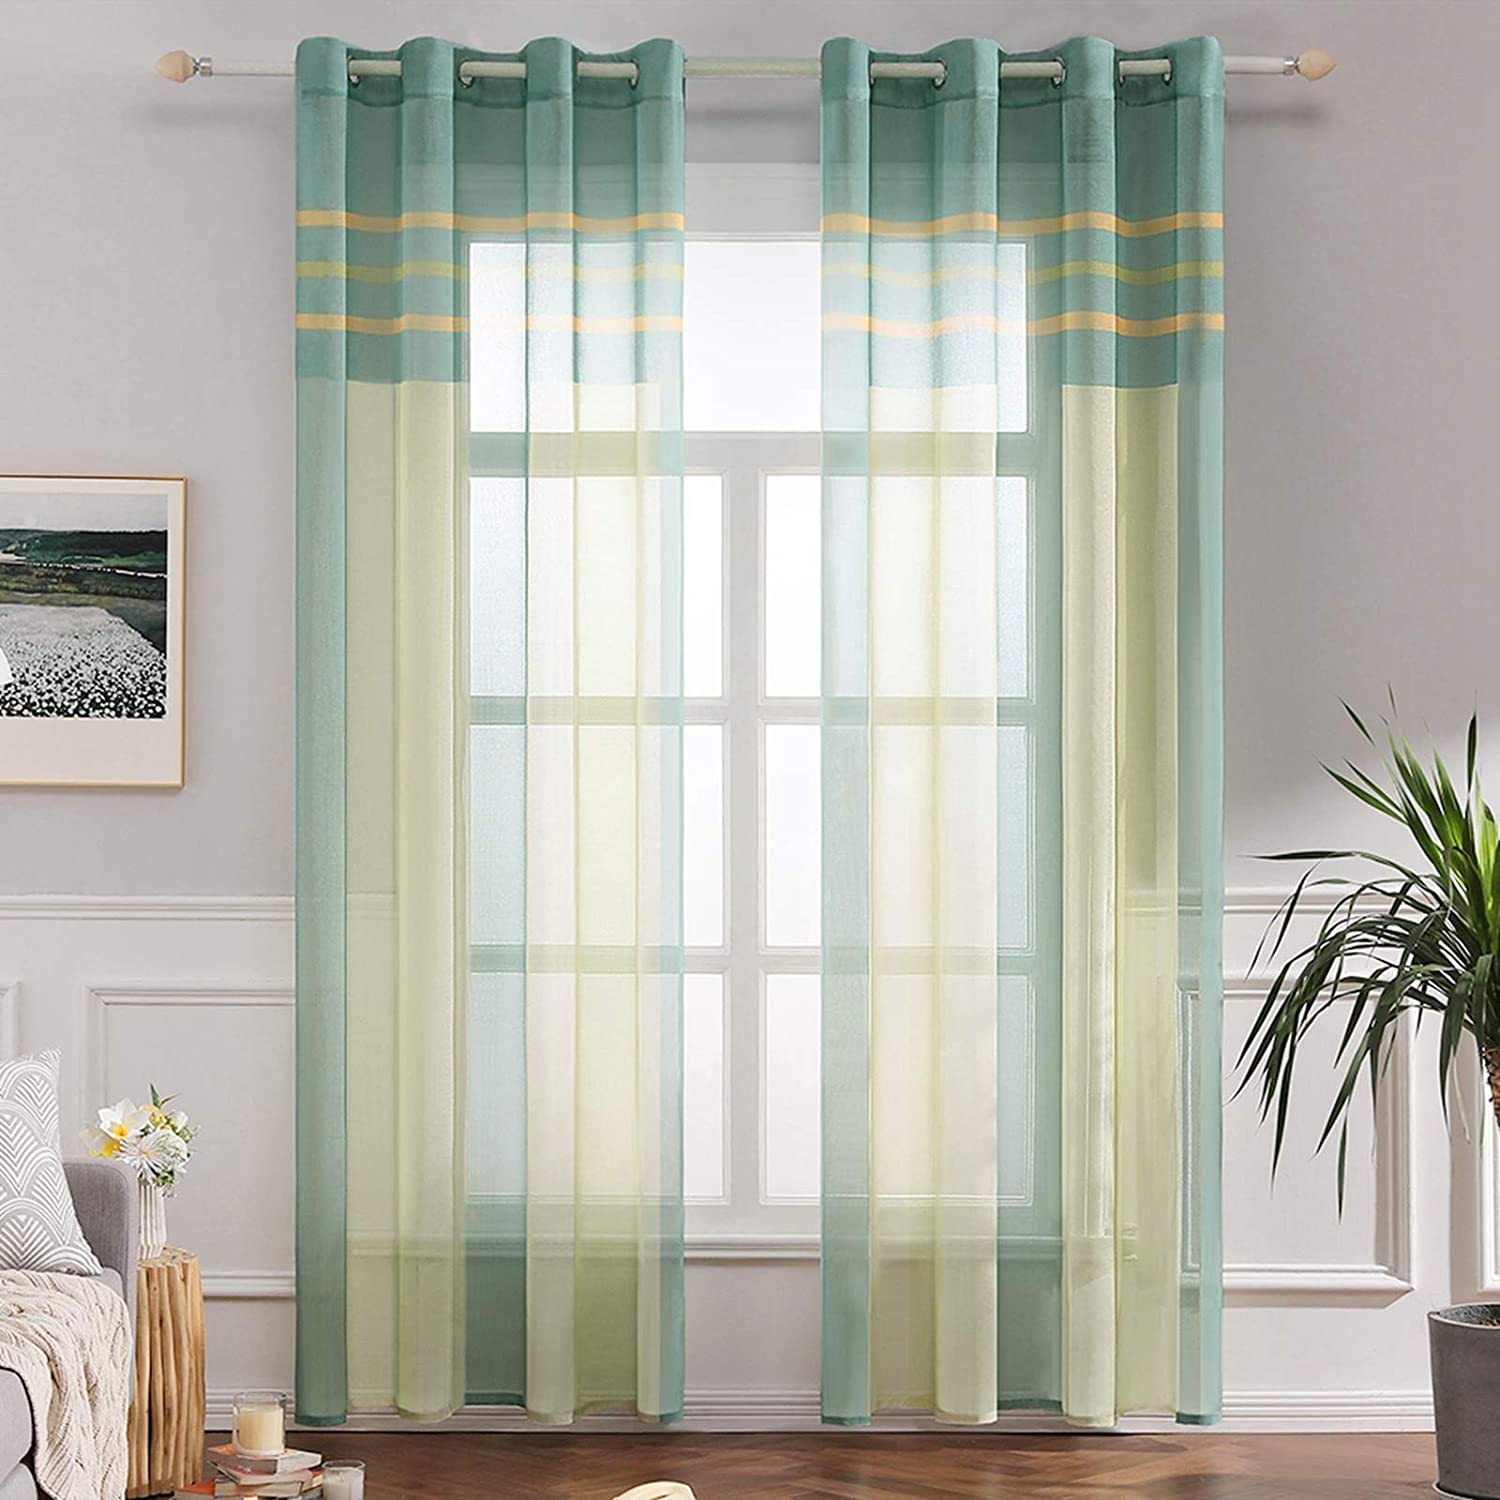 Green+Yellow 140cm x 225cm MIULEE 2 Panel Contemporary Decorative Ring Top Eyelet Voile Curtains Elegance Pinstripe Sheer Panels for Bedroom Livingroom Nursery Room 55 wide x 88 Drop